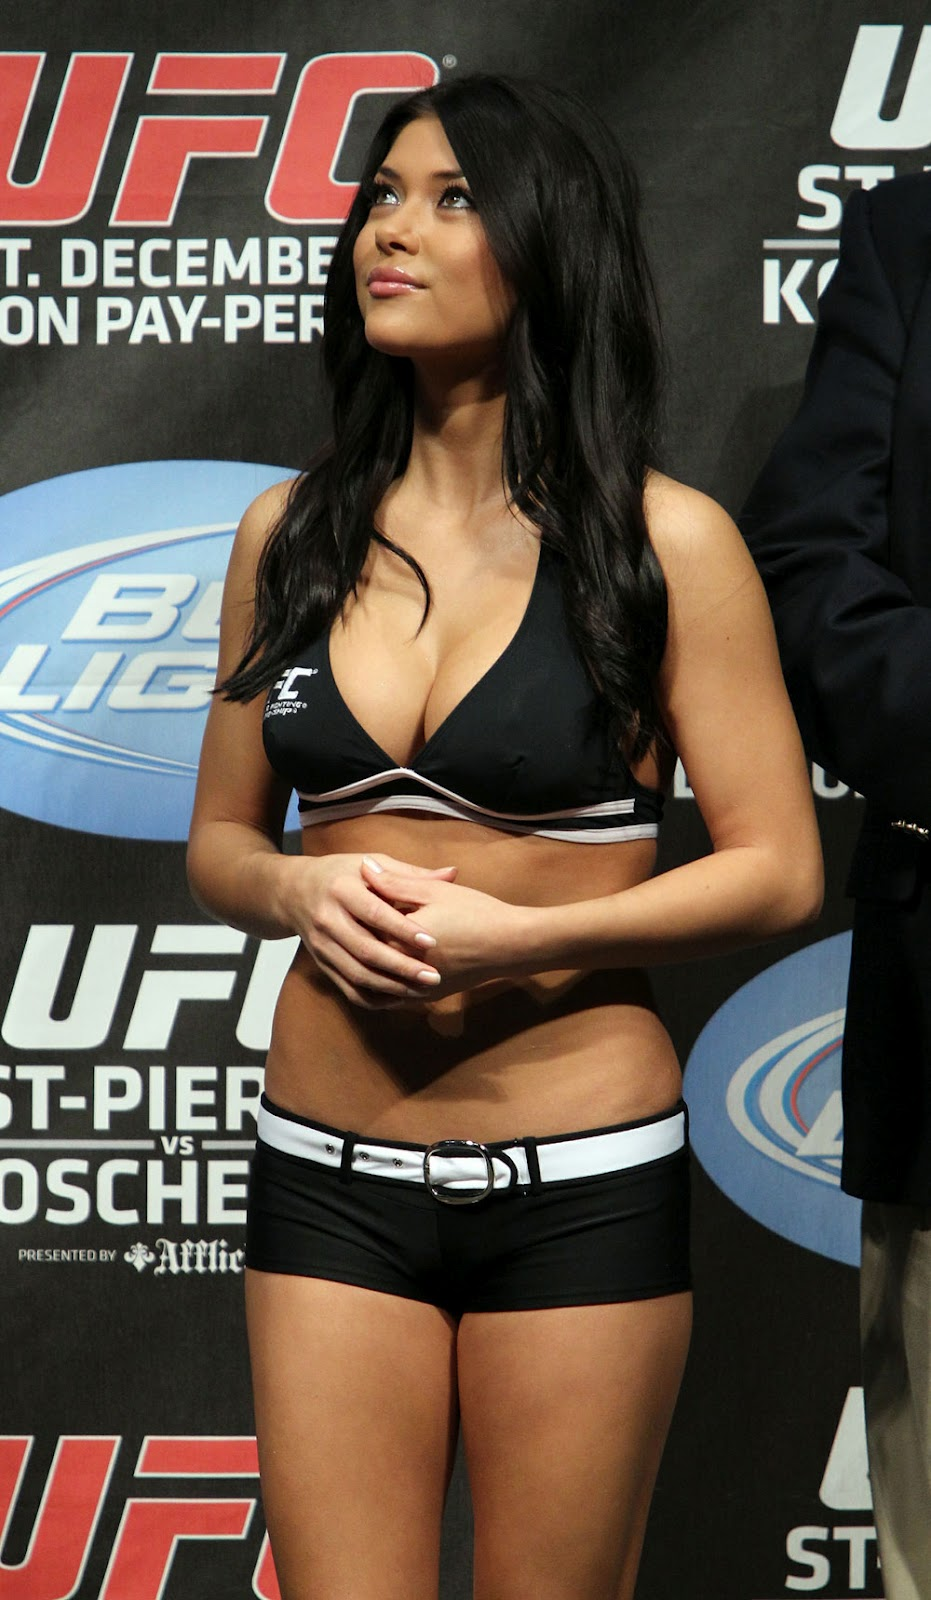 ufc girls sex videos